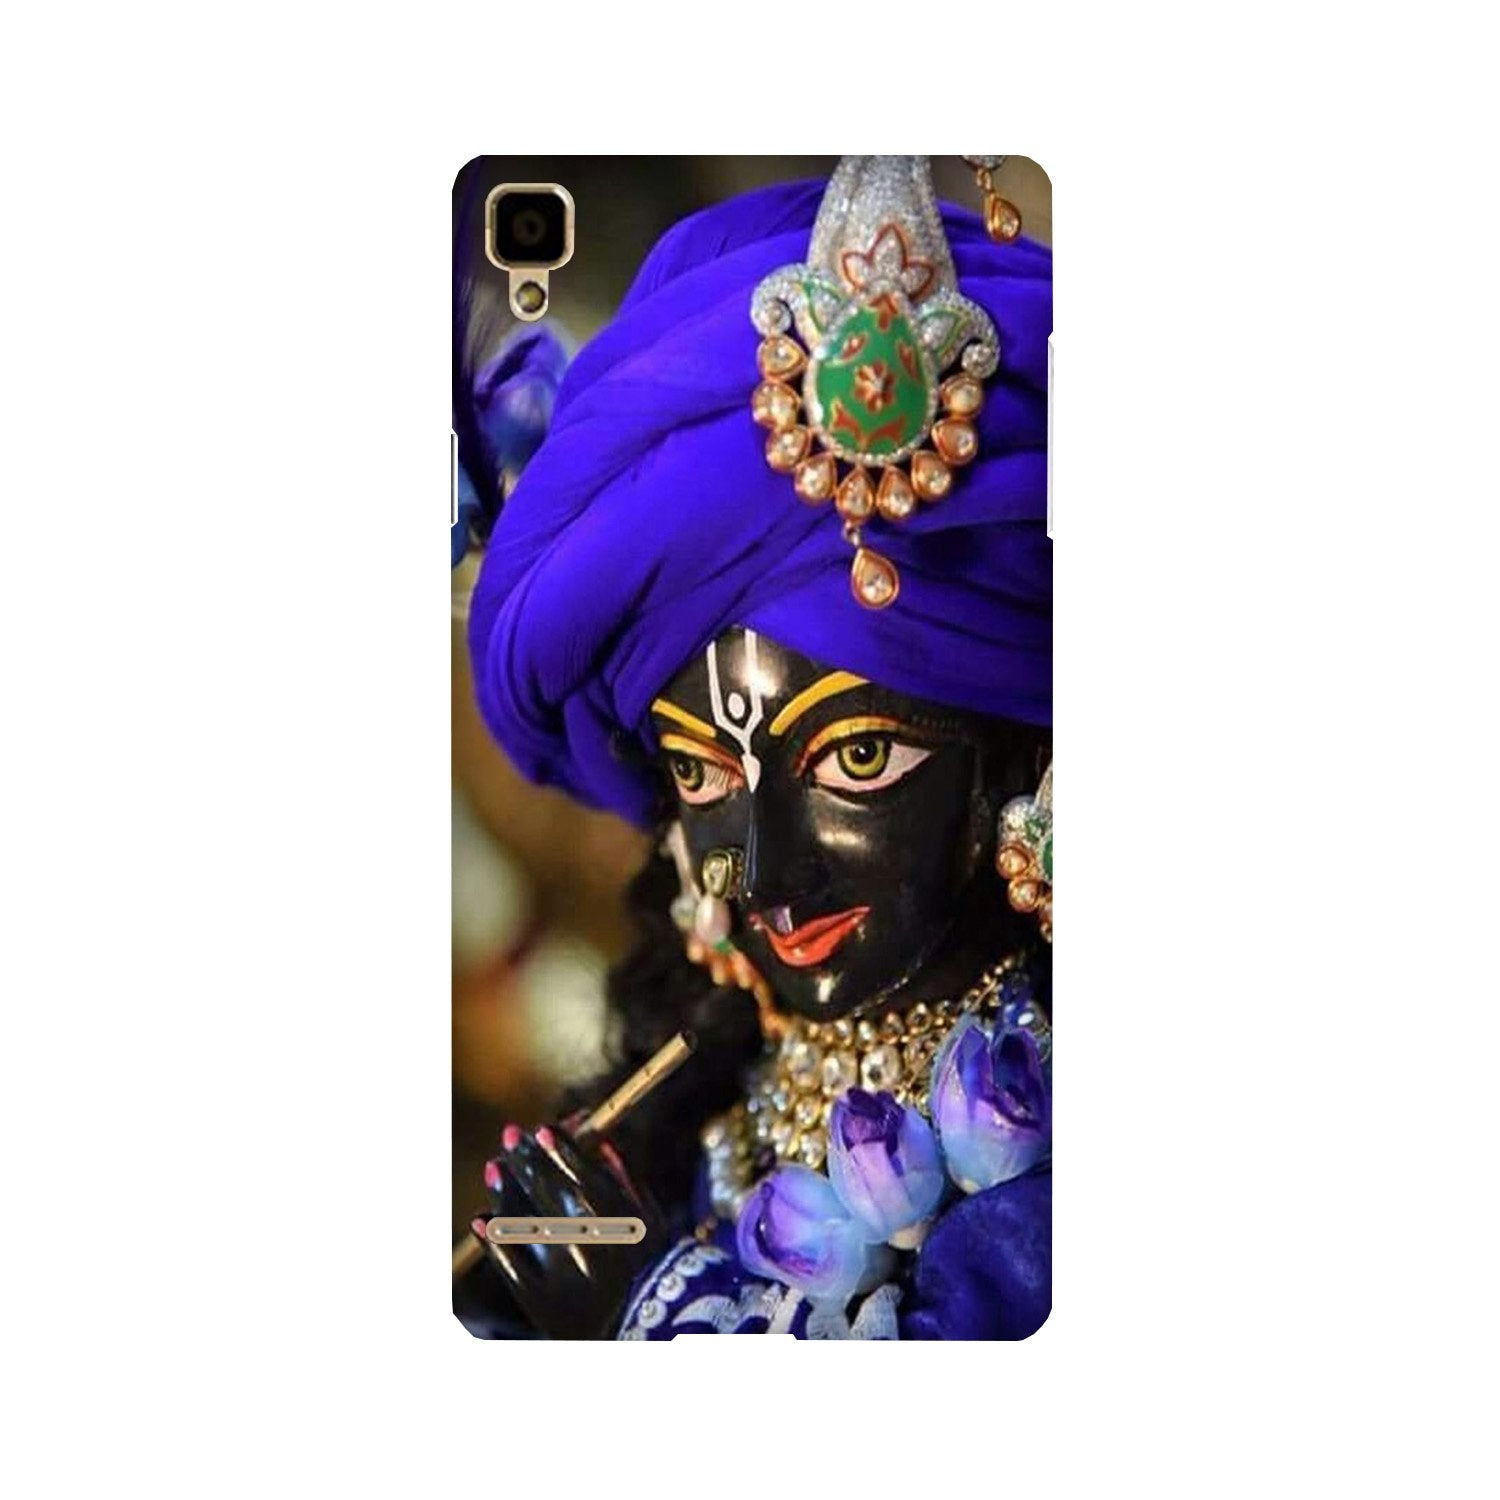 Lord Krishna4 Case for Oppo F1